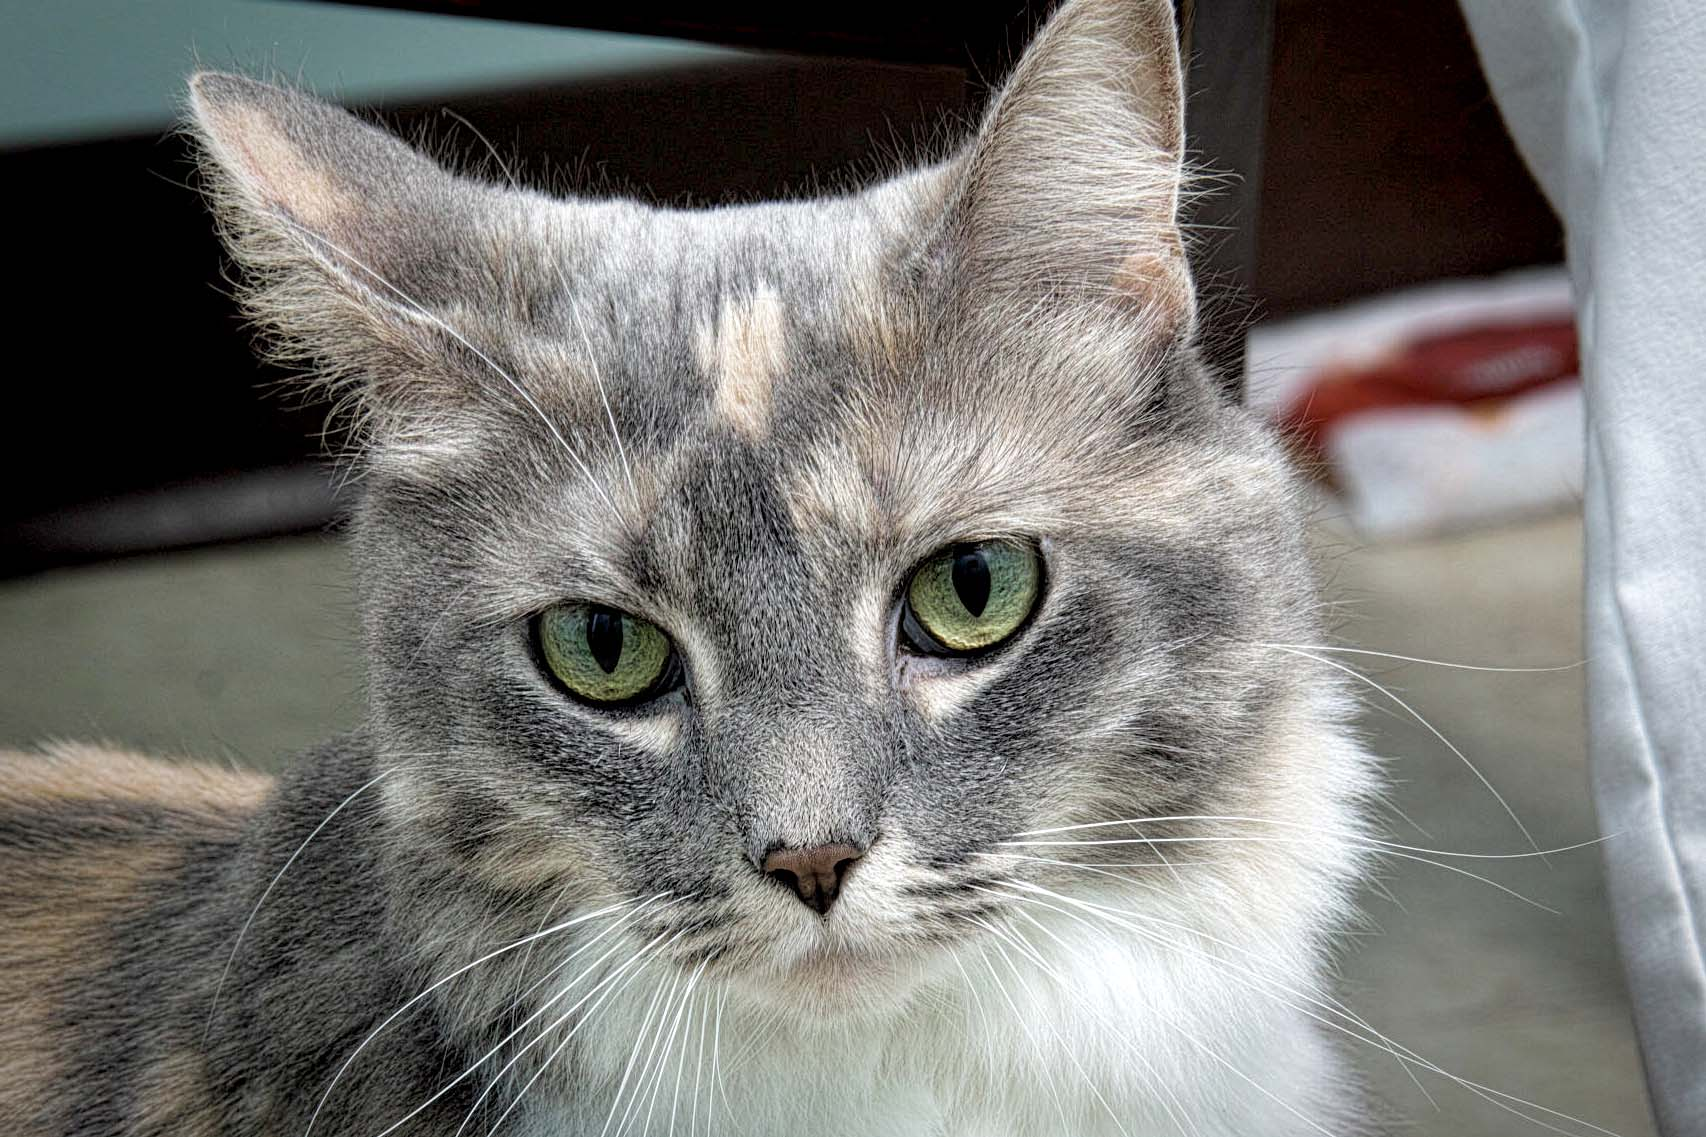 Puffy the cat is 6 years old. Puffy originally came in as a stray soshe has a mysterious past. She is a cat that likes to lounge as well as play, and would make a great addition to any home.